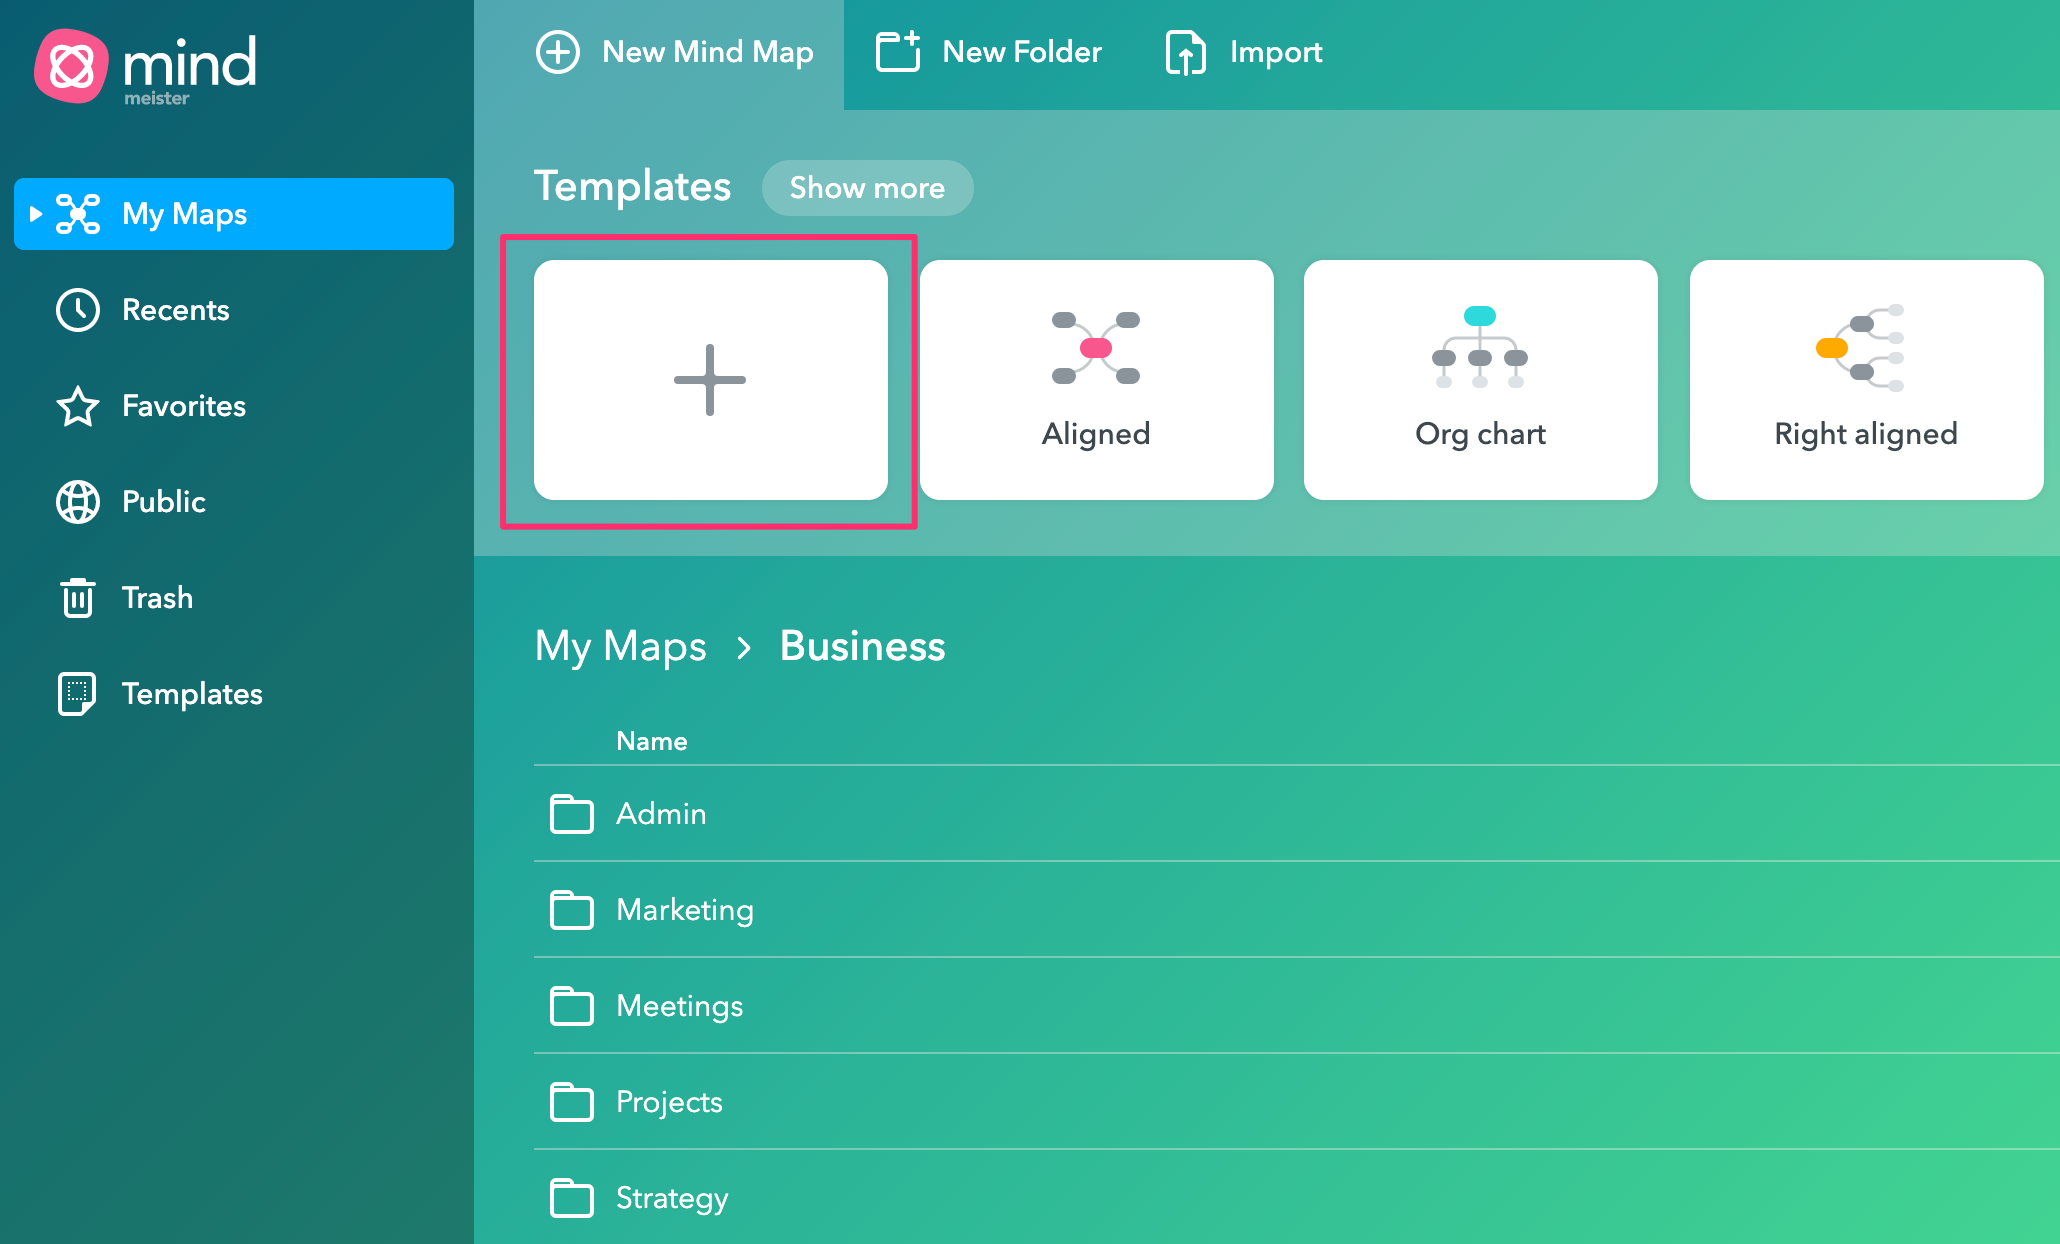 Create a new mind map in MindMeister